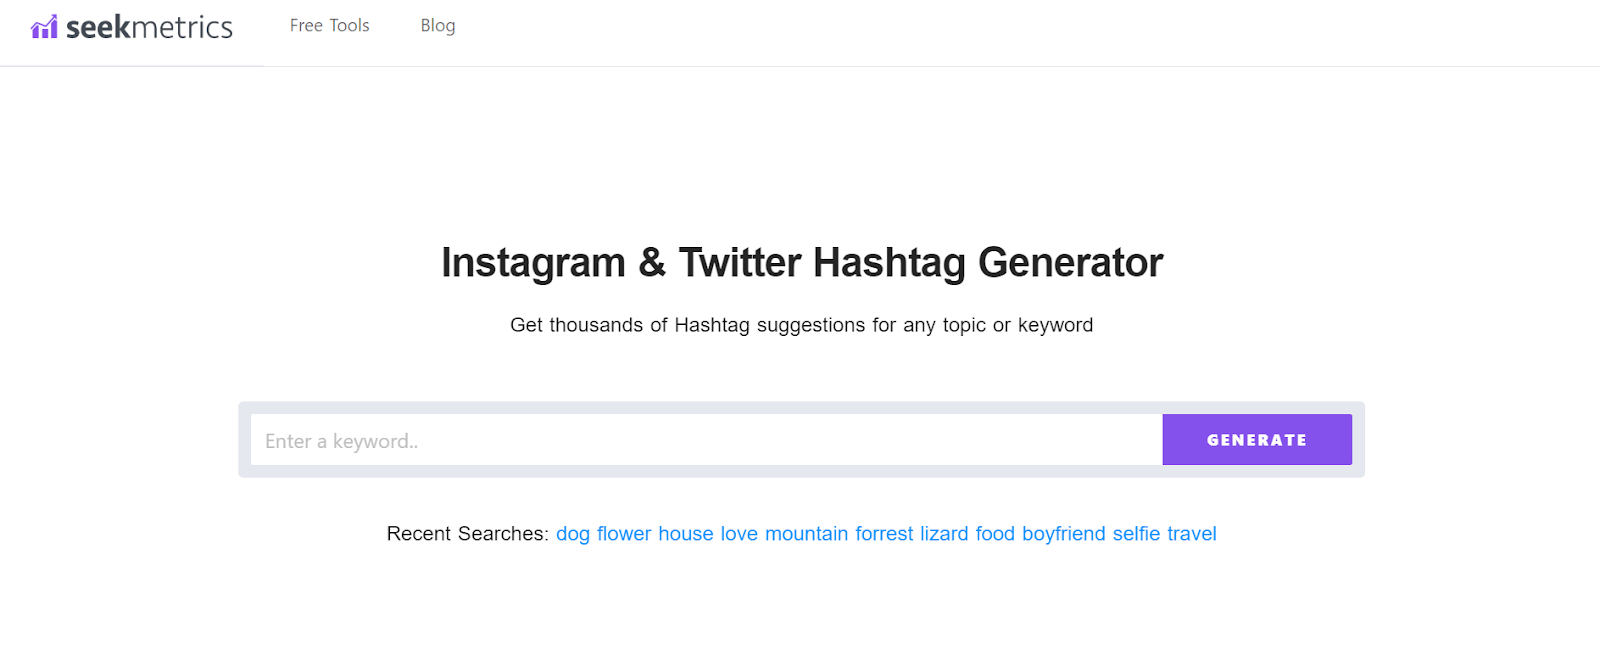 15 of the Best Instagram Hashtag Generator Tools You Can Use in 2020